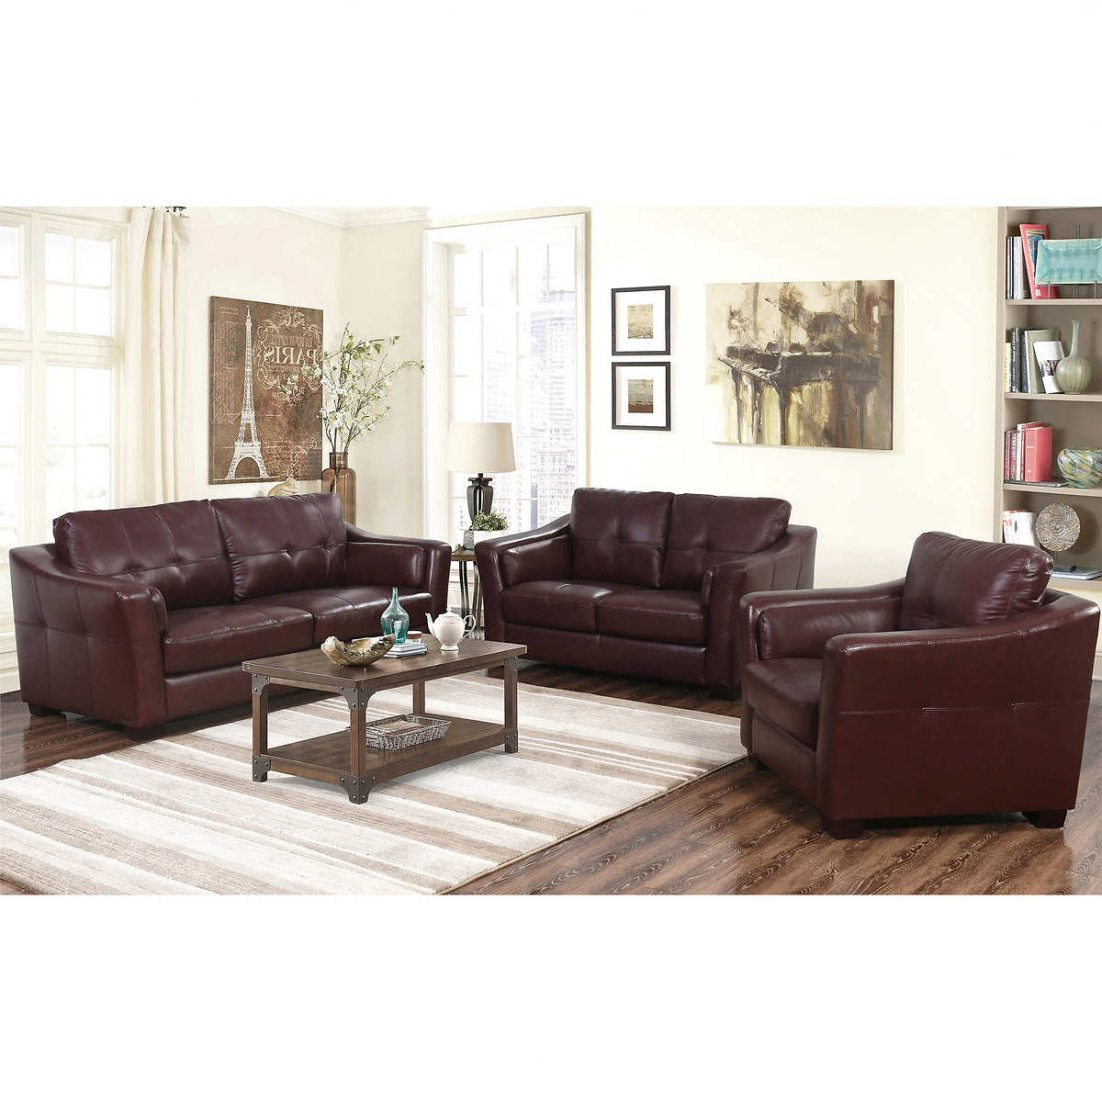 3 Piece Living Room Set Casta Products Pinterest Sofa And Small For Most Recent Mcdade Ash Sofa Chairs (Gallery 20 of 20)